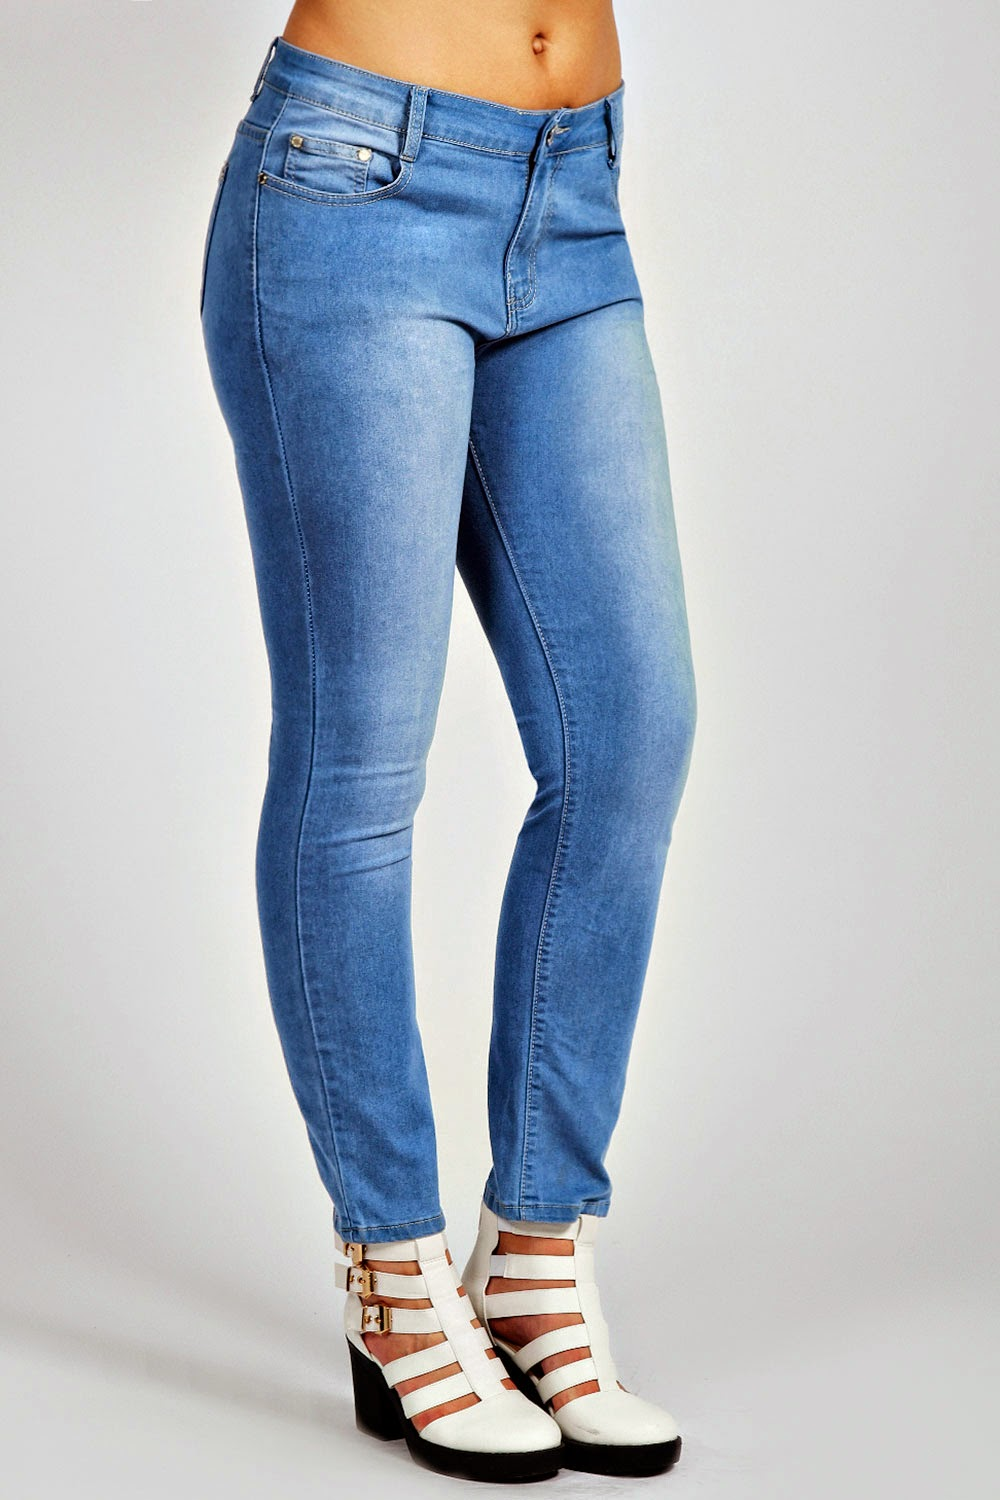 391a9d938c4b From what I've read in other bloggers reviews, boohoo plus sizes are rather  un-generous. If these are anything to go by then that is correct.